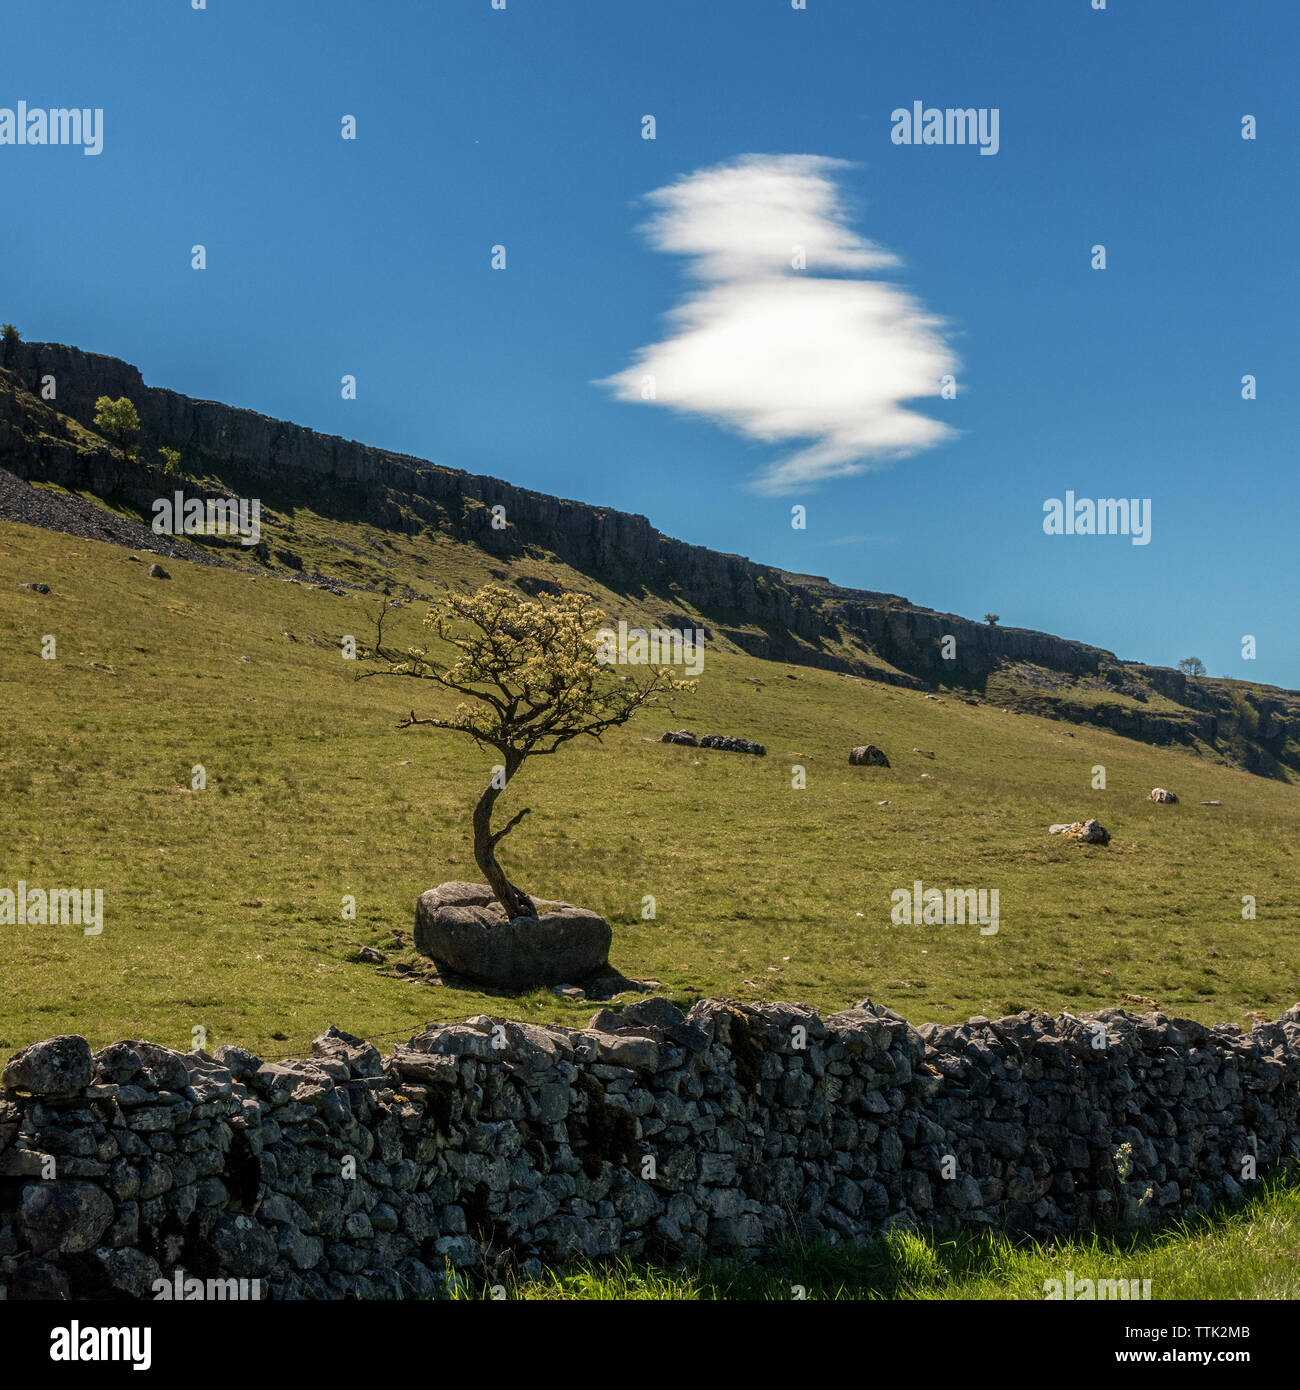 UK Landscape: Hawthorn tree growing out of a limestone rock in Chapel-le-Dale, Yorkshire Dales - Stock Image